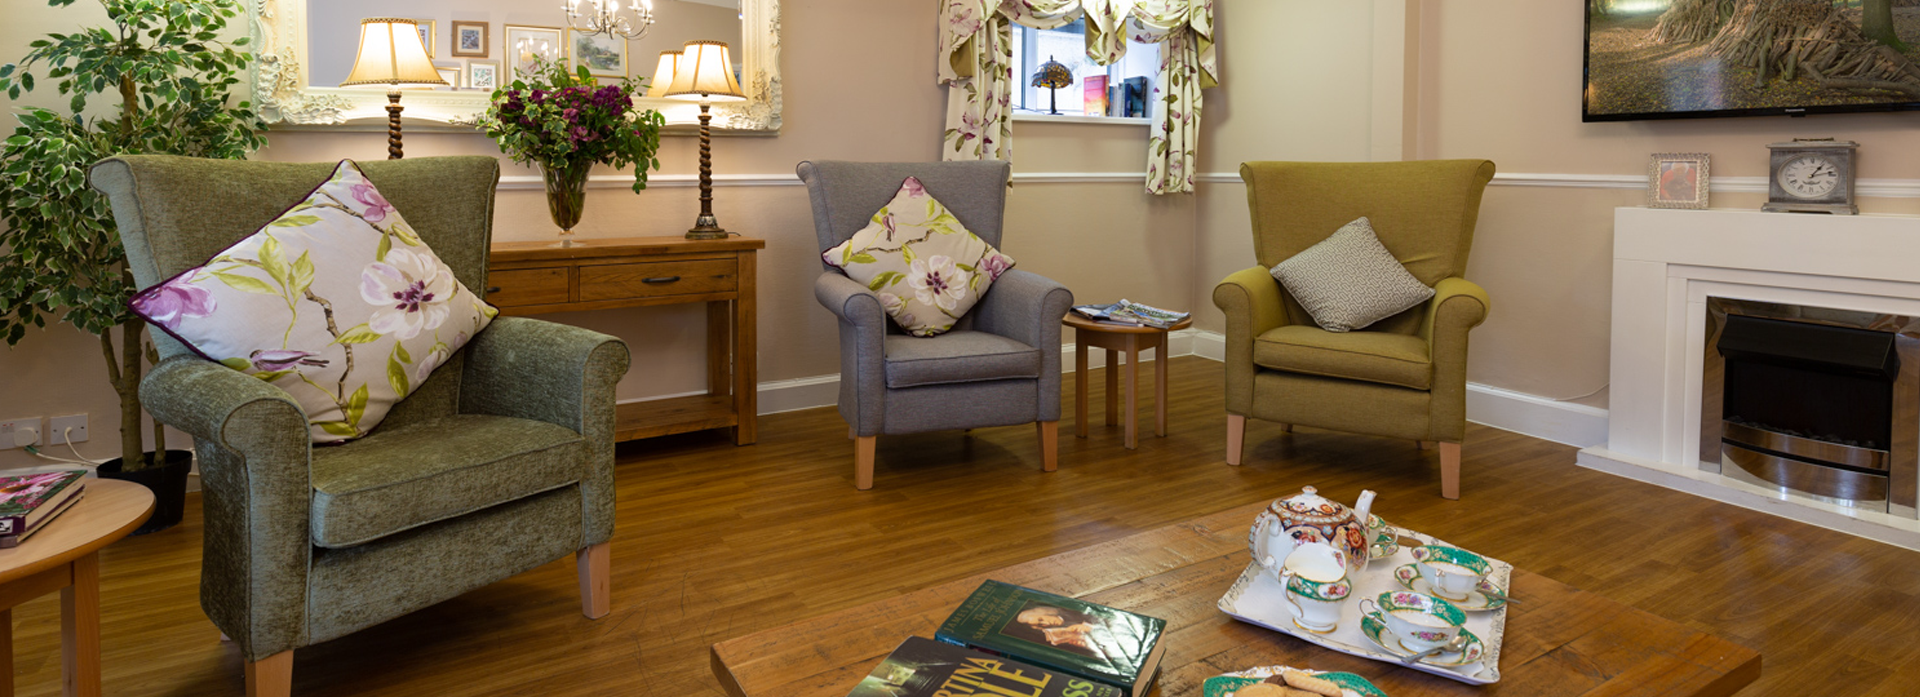 Dementia Care Home in West Sutton